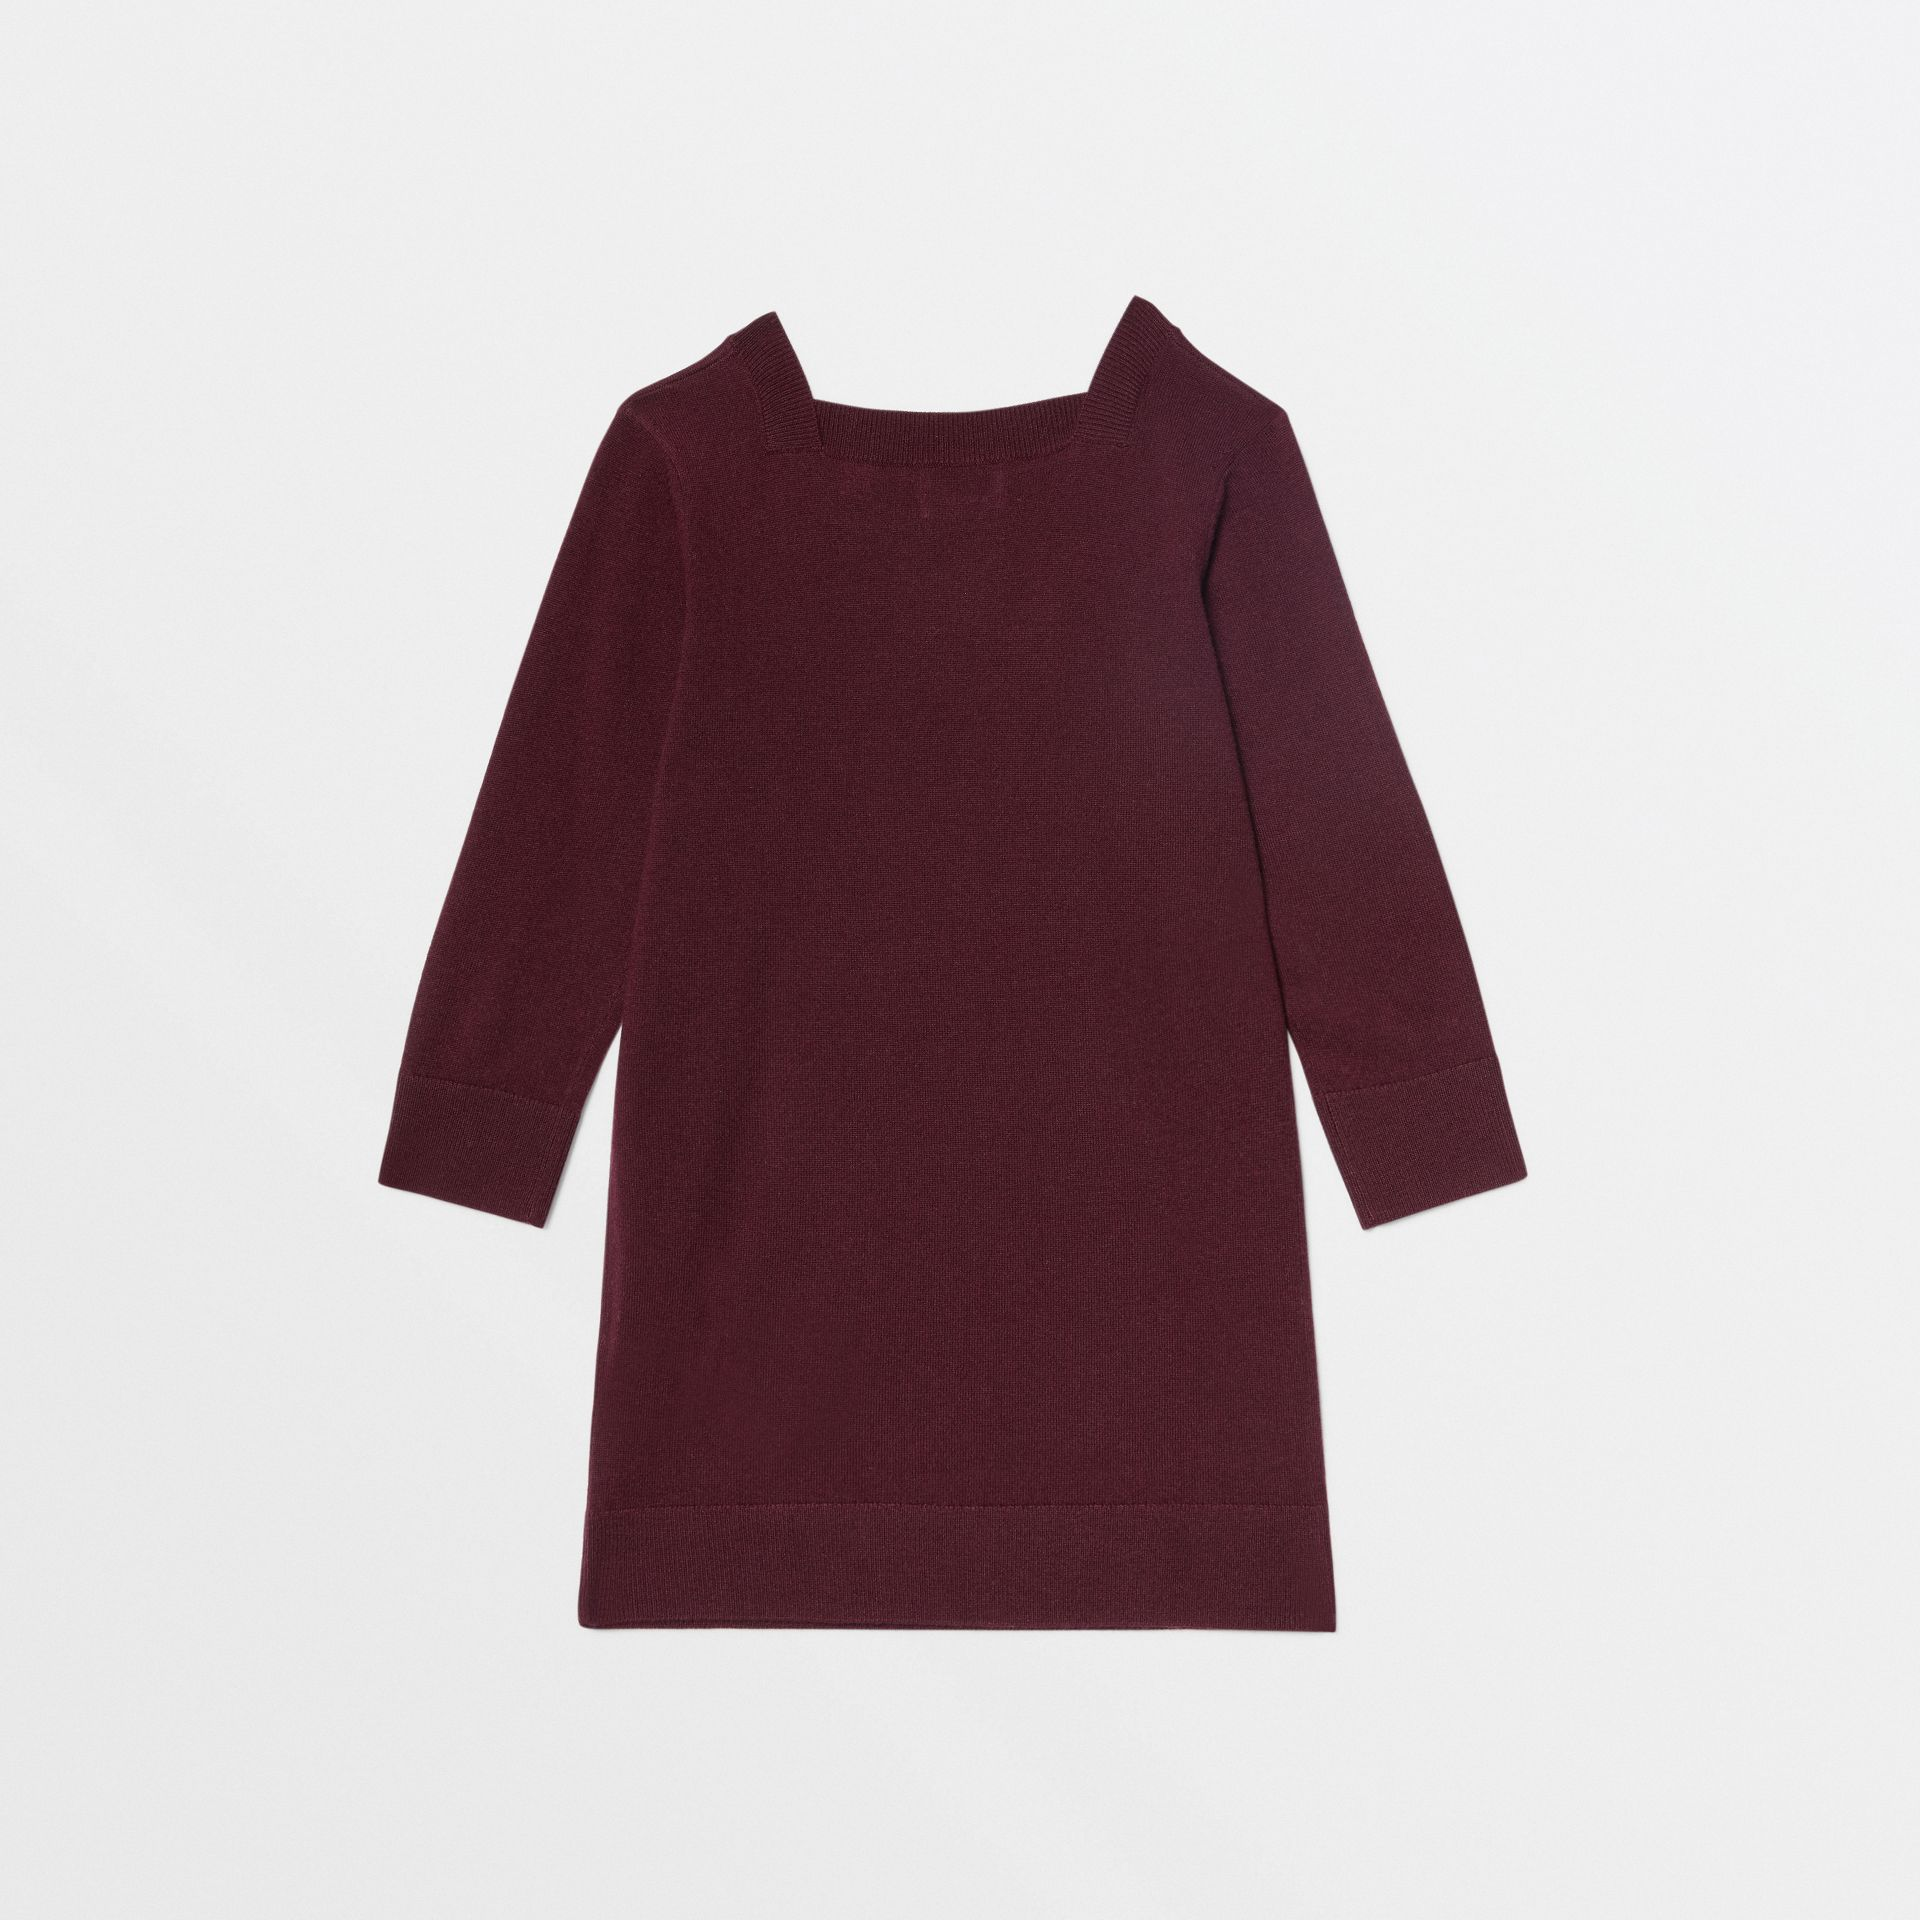 Monogram Motif Cashmere Sweater Dress in Burgundy | Burberry - gallery image 3